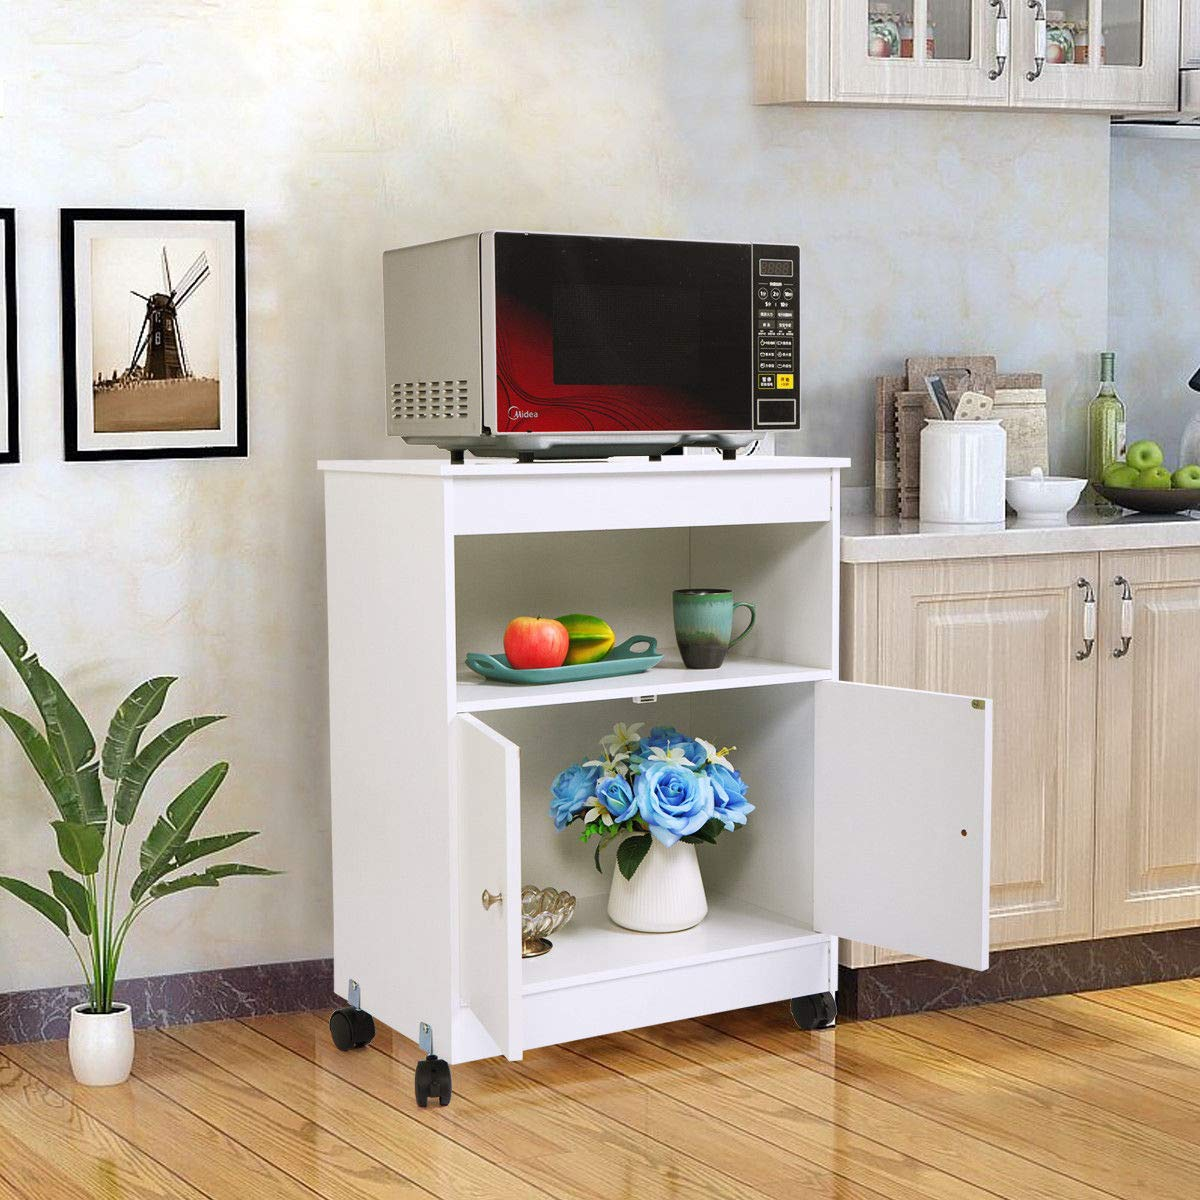 Thegreatshopman Rolling Wooden Storage Cabinet Kitchen Microwave Cart